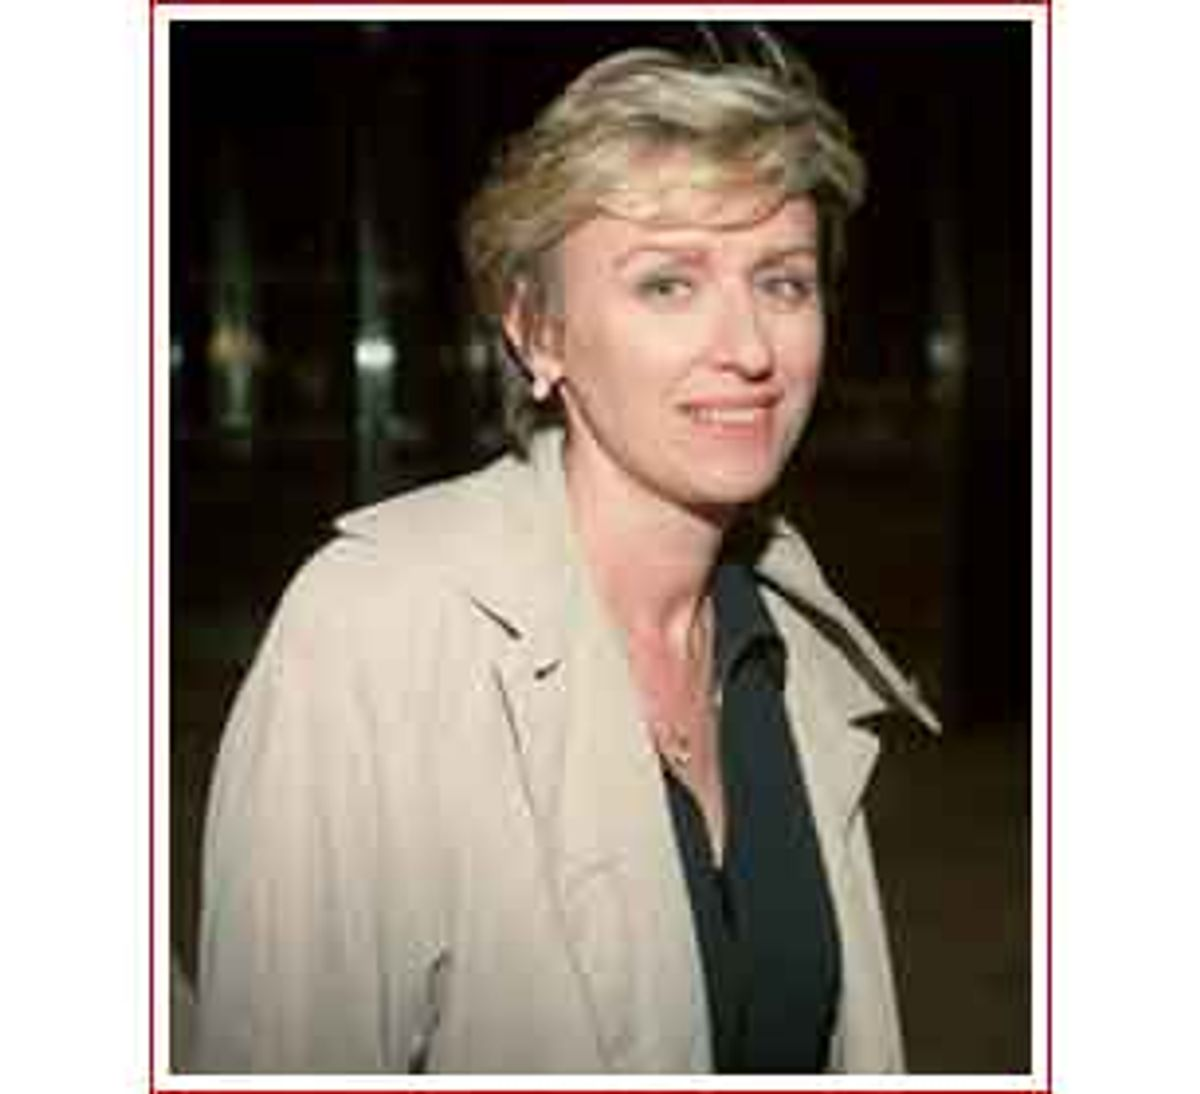 Tina Brown, Oxford-educated former Londoner and former Editor of New Yorker magazine, leaves the Four Seasons Hotel in New York Wednesday, July 8, 1998. Brown resigned her position at the New Yorker Wednesday to lead a film, TV and publishing partnership with Miramax Films. In six years as The New Yorker's editor, Brown reshaped what some considered a dusty anachronism with punchier articles, splashy photographs, and extensive coverage of politics and popular culture. (AP Photo/Leo Sorel) (Associated Press)